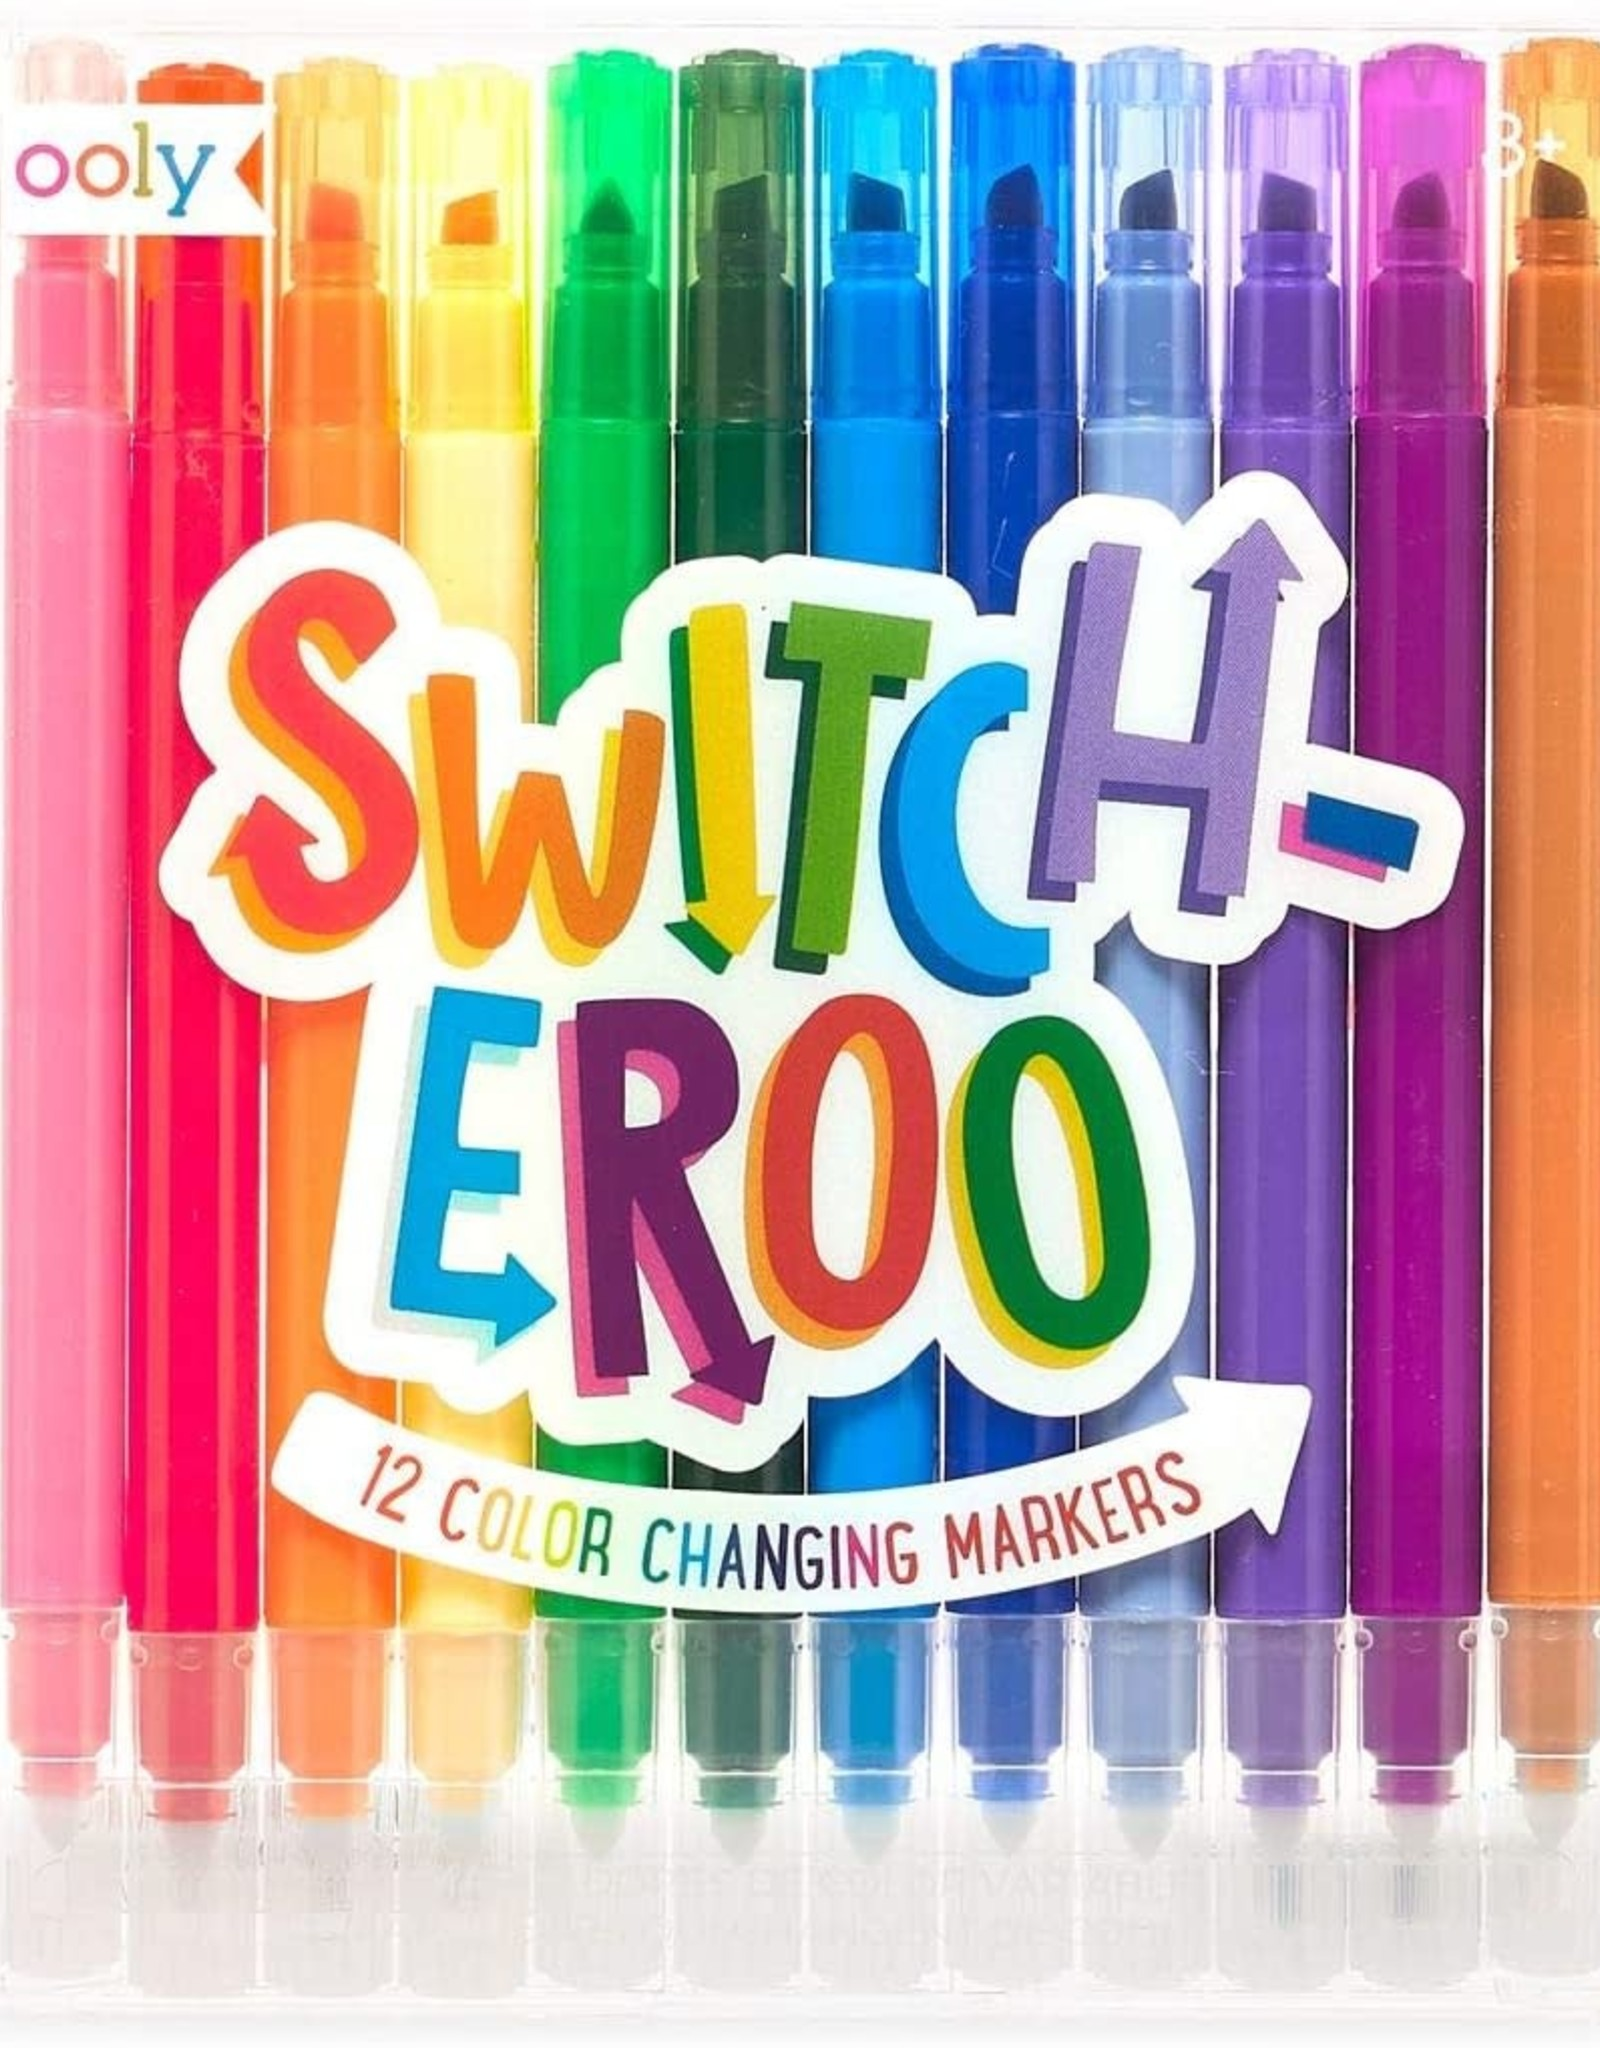 Ooly Markers Switch-eroo! Color-Changing